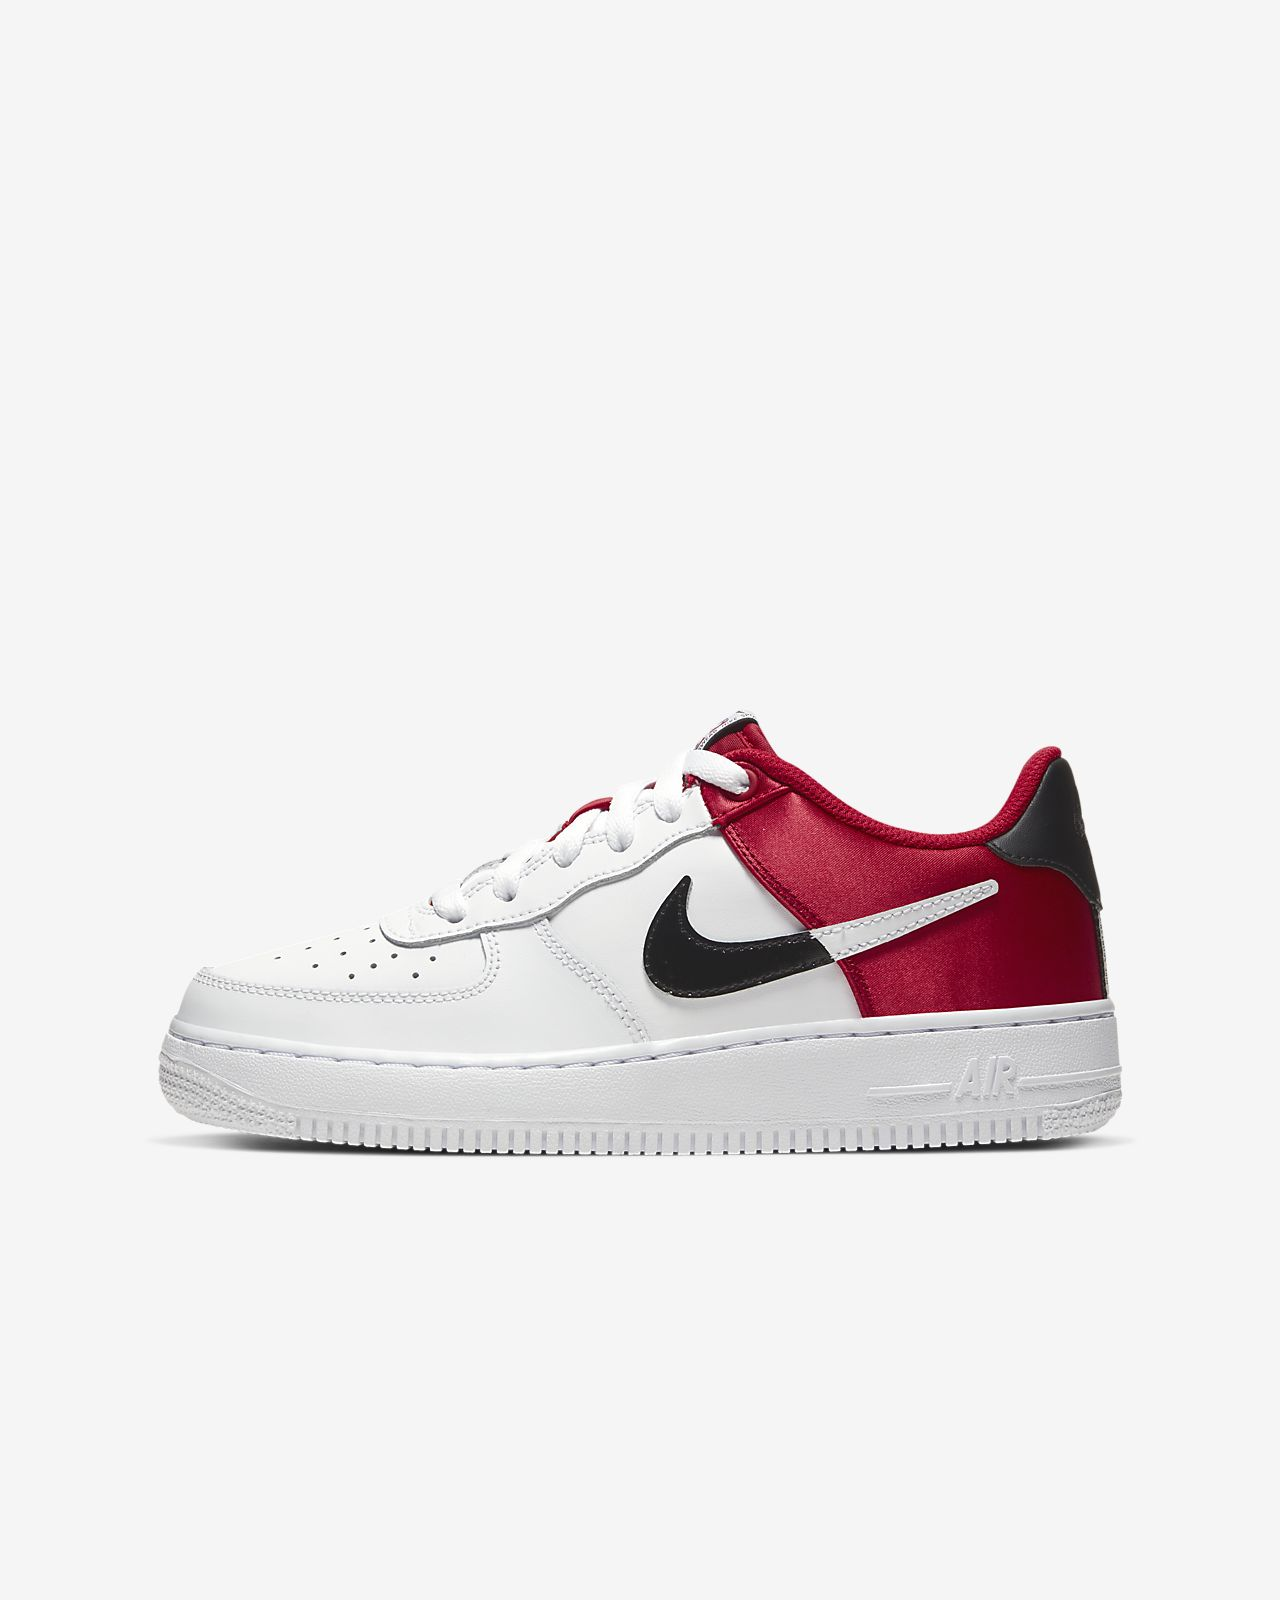 nike air force 1 flyknit low, Kids Nike Air Max 90 Red White